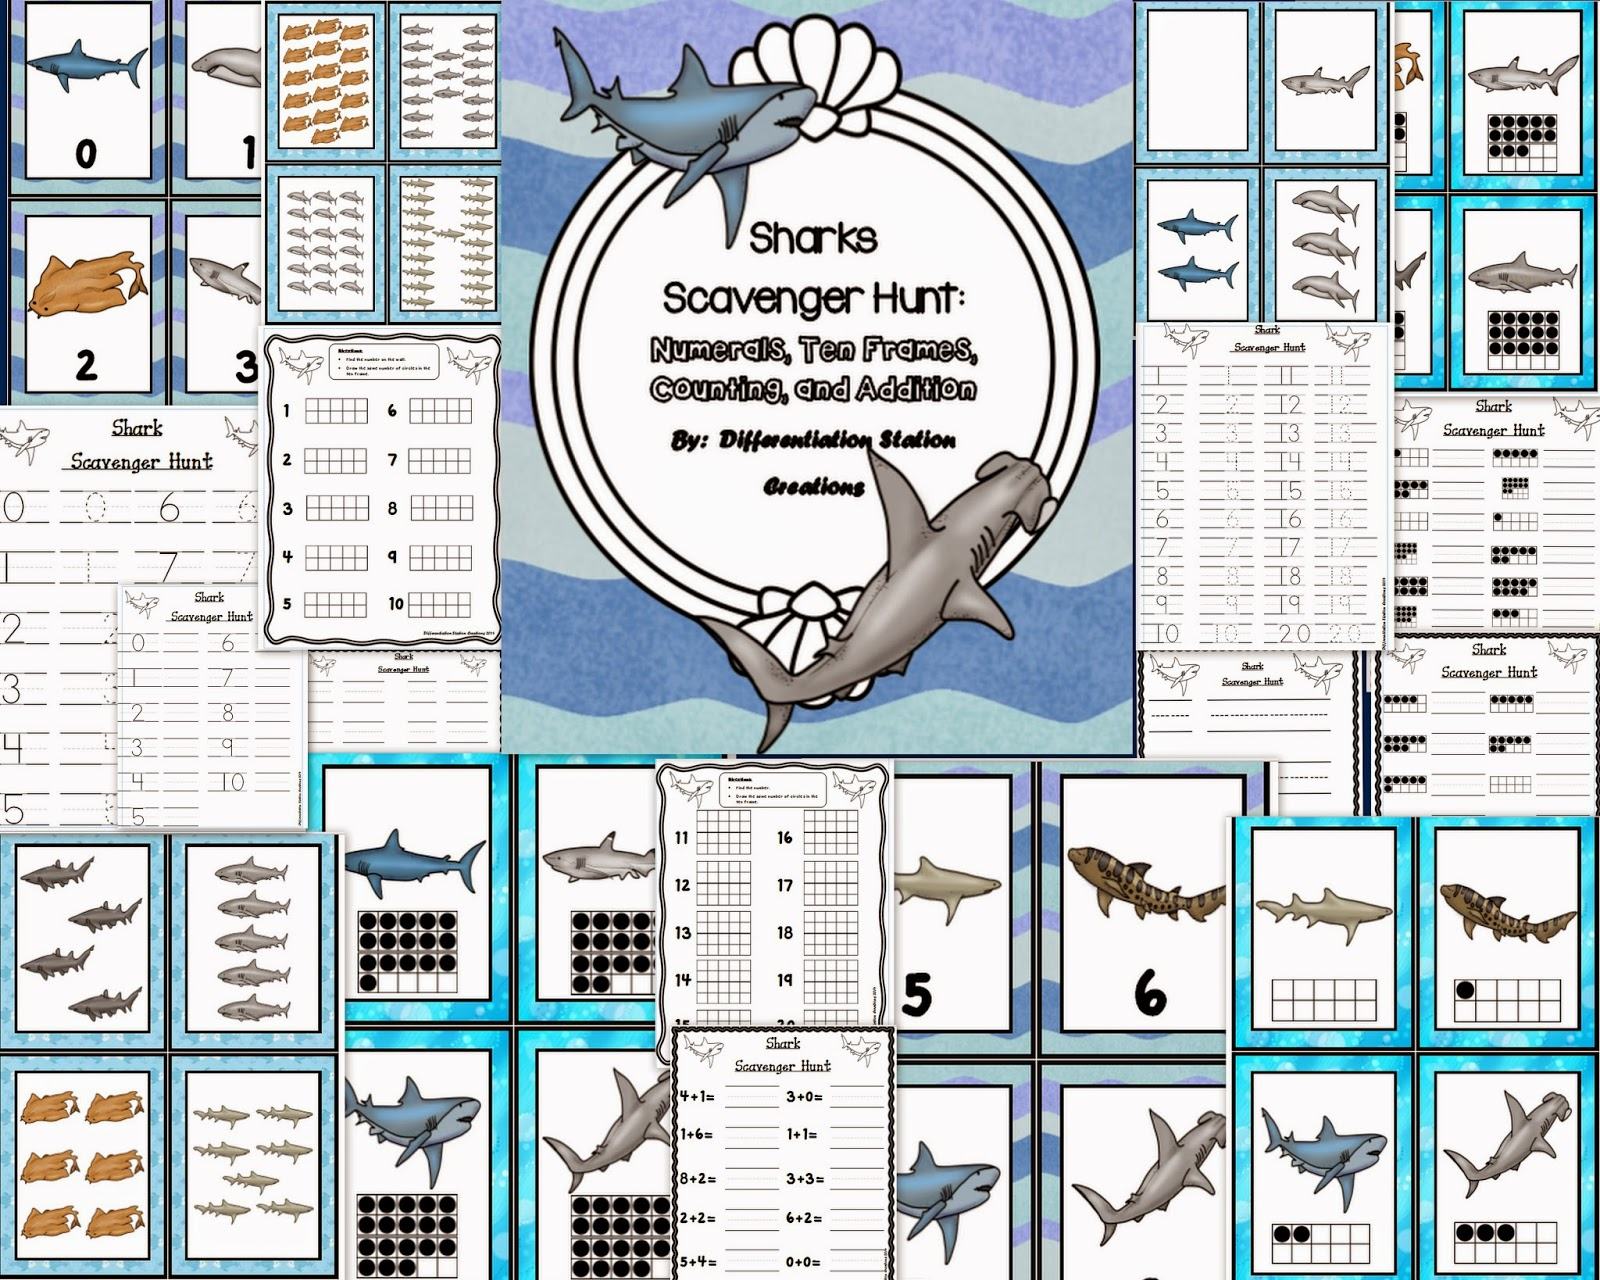 http://www.teacherspayteachers.com/Product/Sharks-Math-Scavenger-Hunt-Numerals-Ten-Frames-Counting-and-Cardinality-1090601